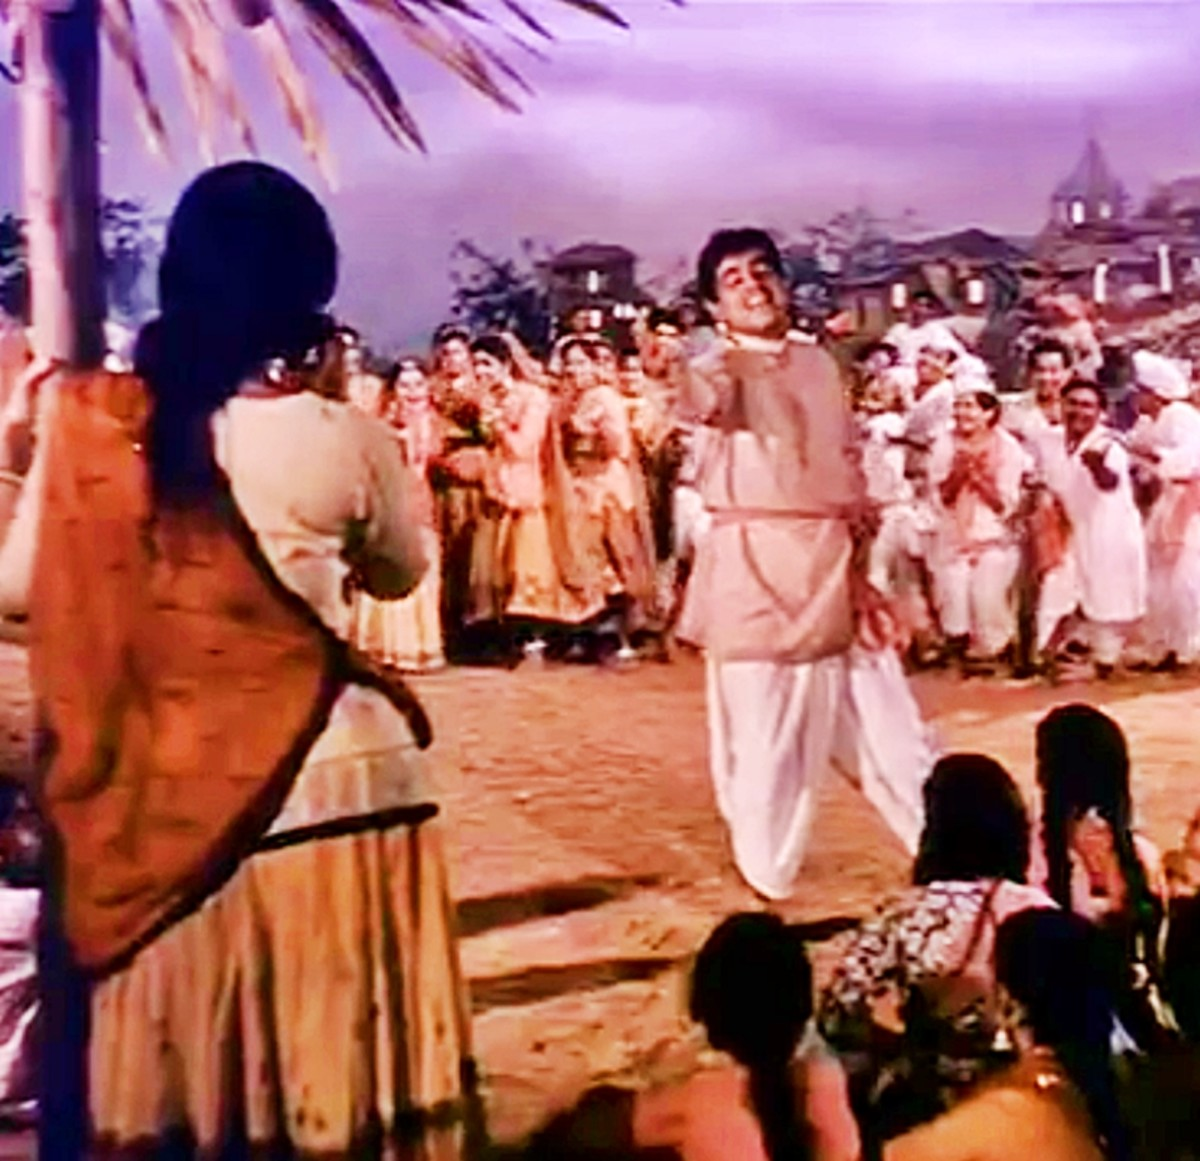 Dilip Kumar and Vaijayanthimala in Ganga Jamuna.  A beautiful folk dance celebrating love with joy.